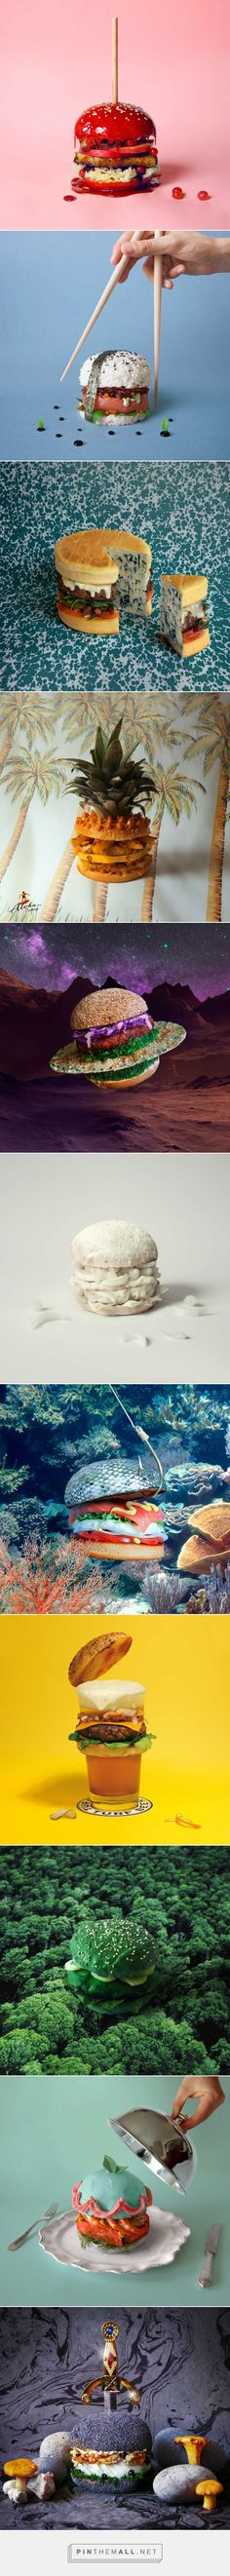 Miss Moss · Fat & Furious Burger is a project by french graphic designers…